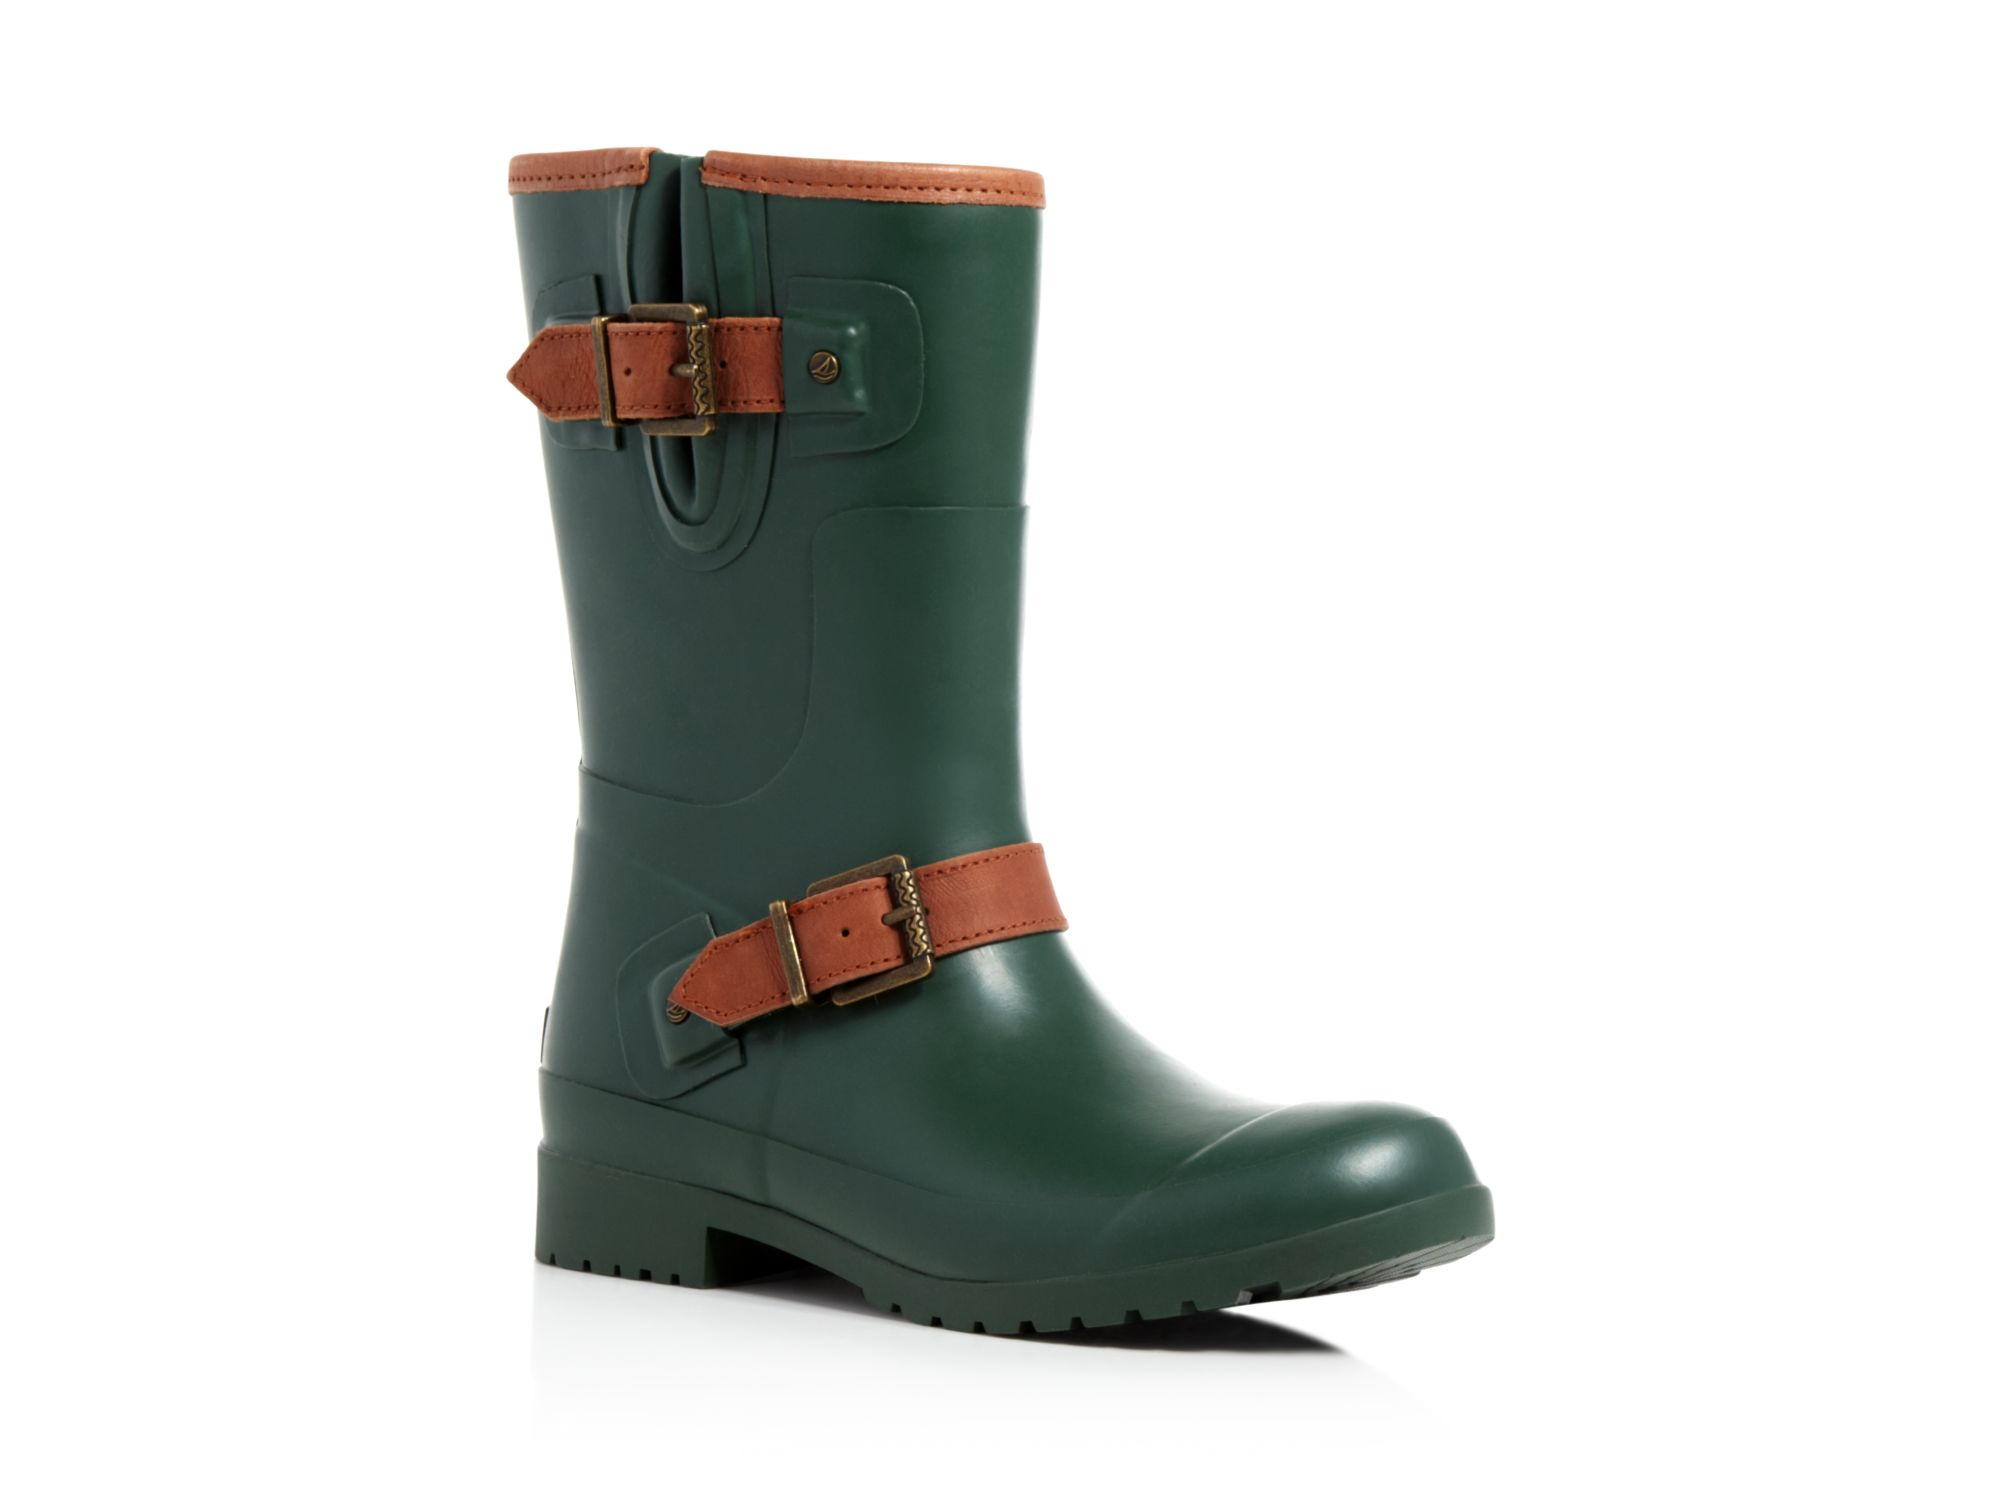 Lyst Sperry Top Sider Walker Fog Buckled Rain Boots In Green